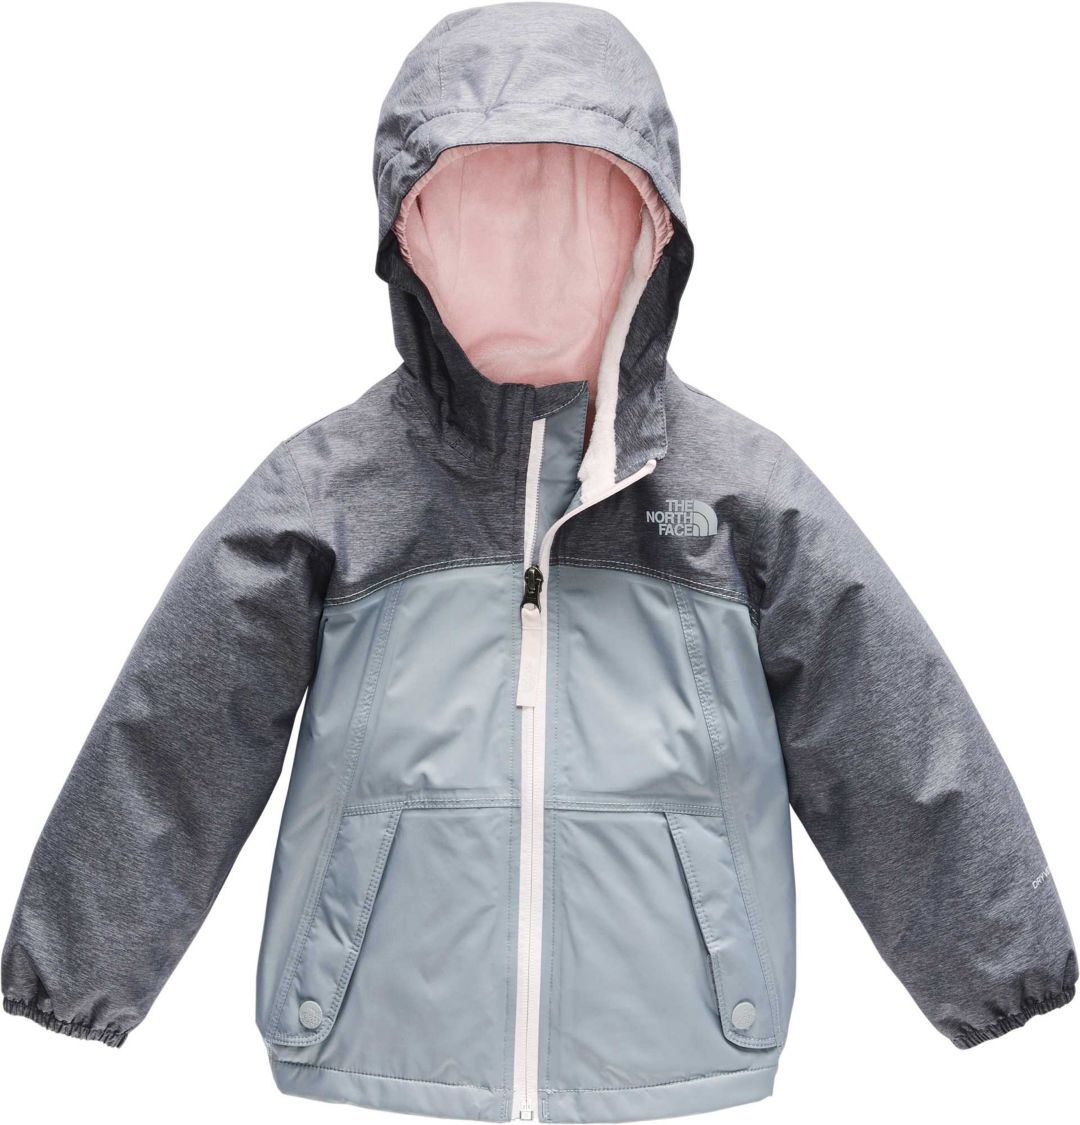 88bfb8009 The North Face Toddler Girls' Warm Storm Rain Jacket